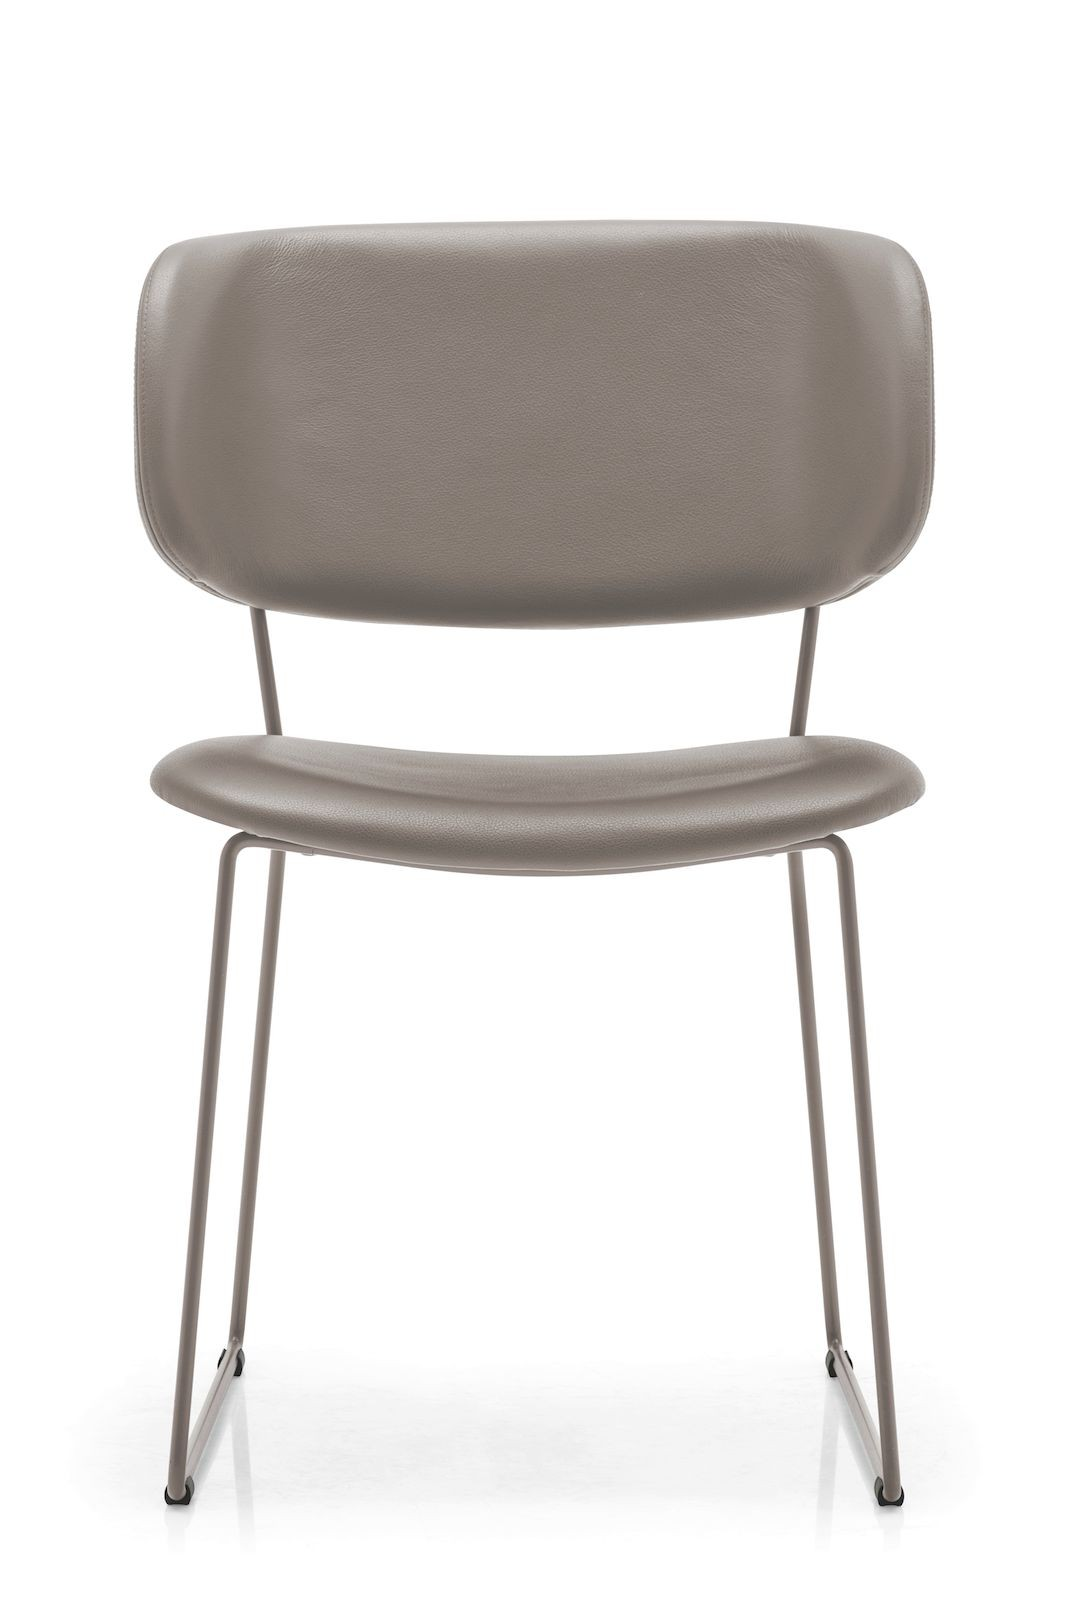 calligaris claire m dining chair frank mc gowan